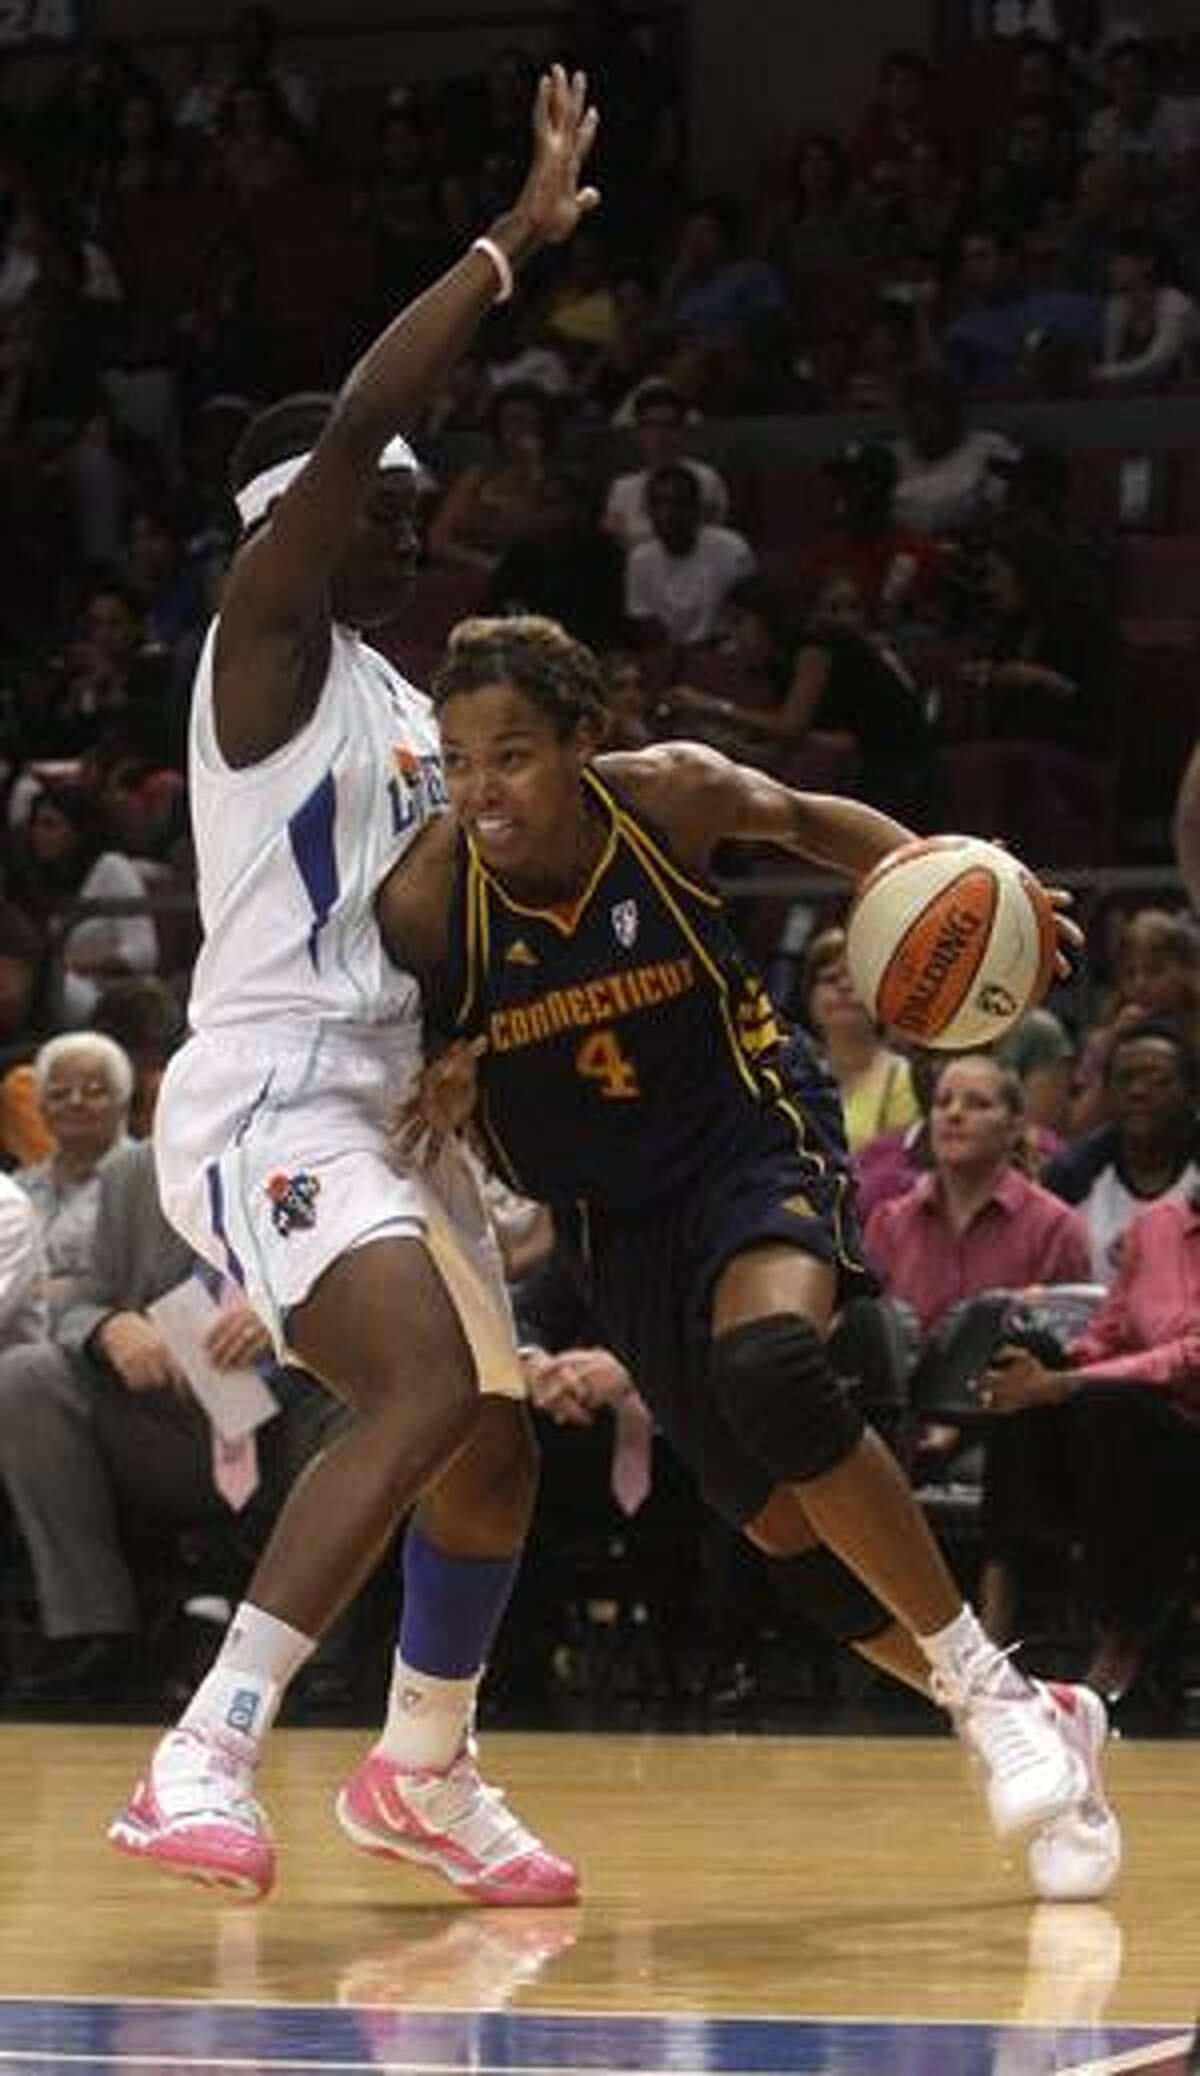 Connecticut Sun's Kiesha Brown (4) drives past New York Liberty's Essence Carson, left, during the first half Friday in New York.